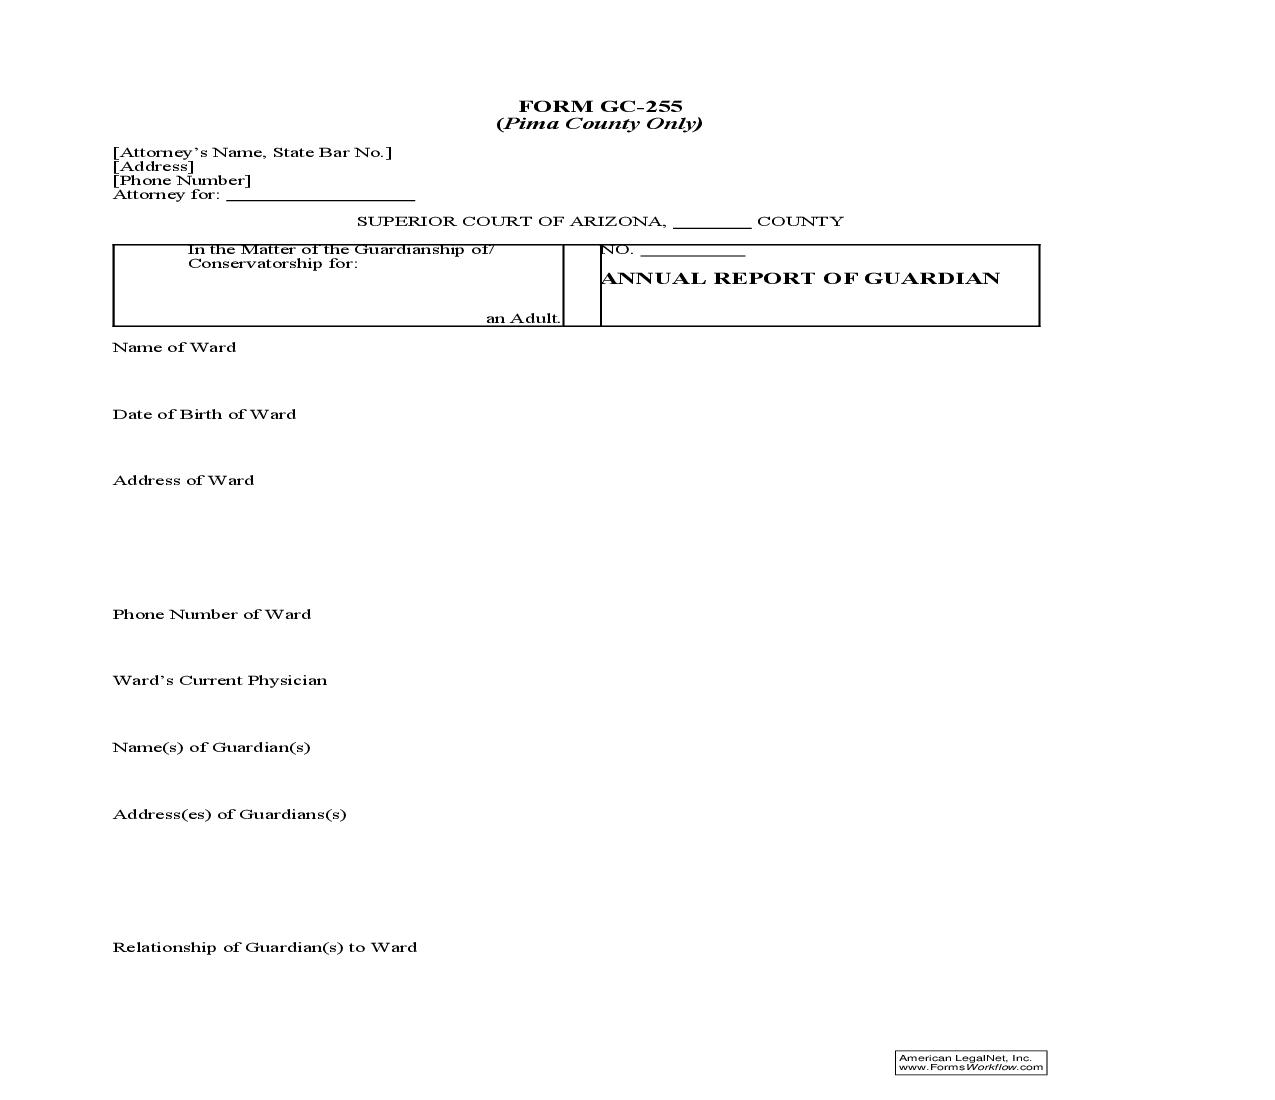 Annual Report Of Guardian (Adult) (Pima County Only) {GC-255}   Pdf Doc Docx   GTLaw